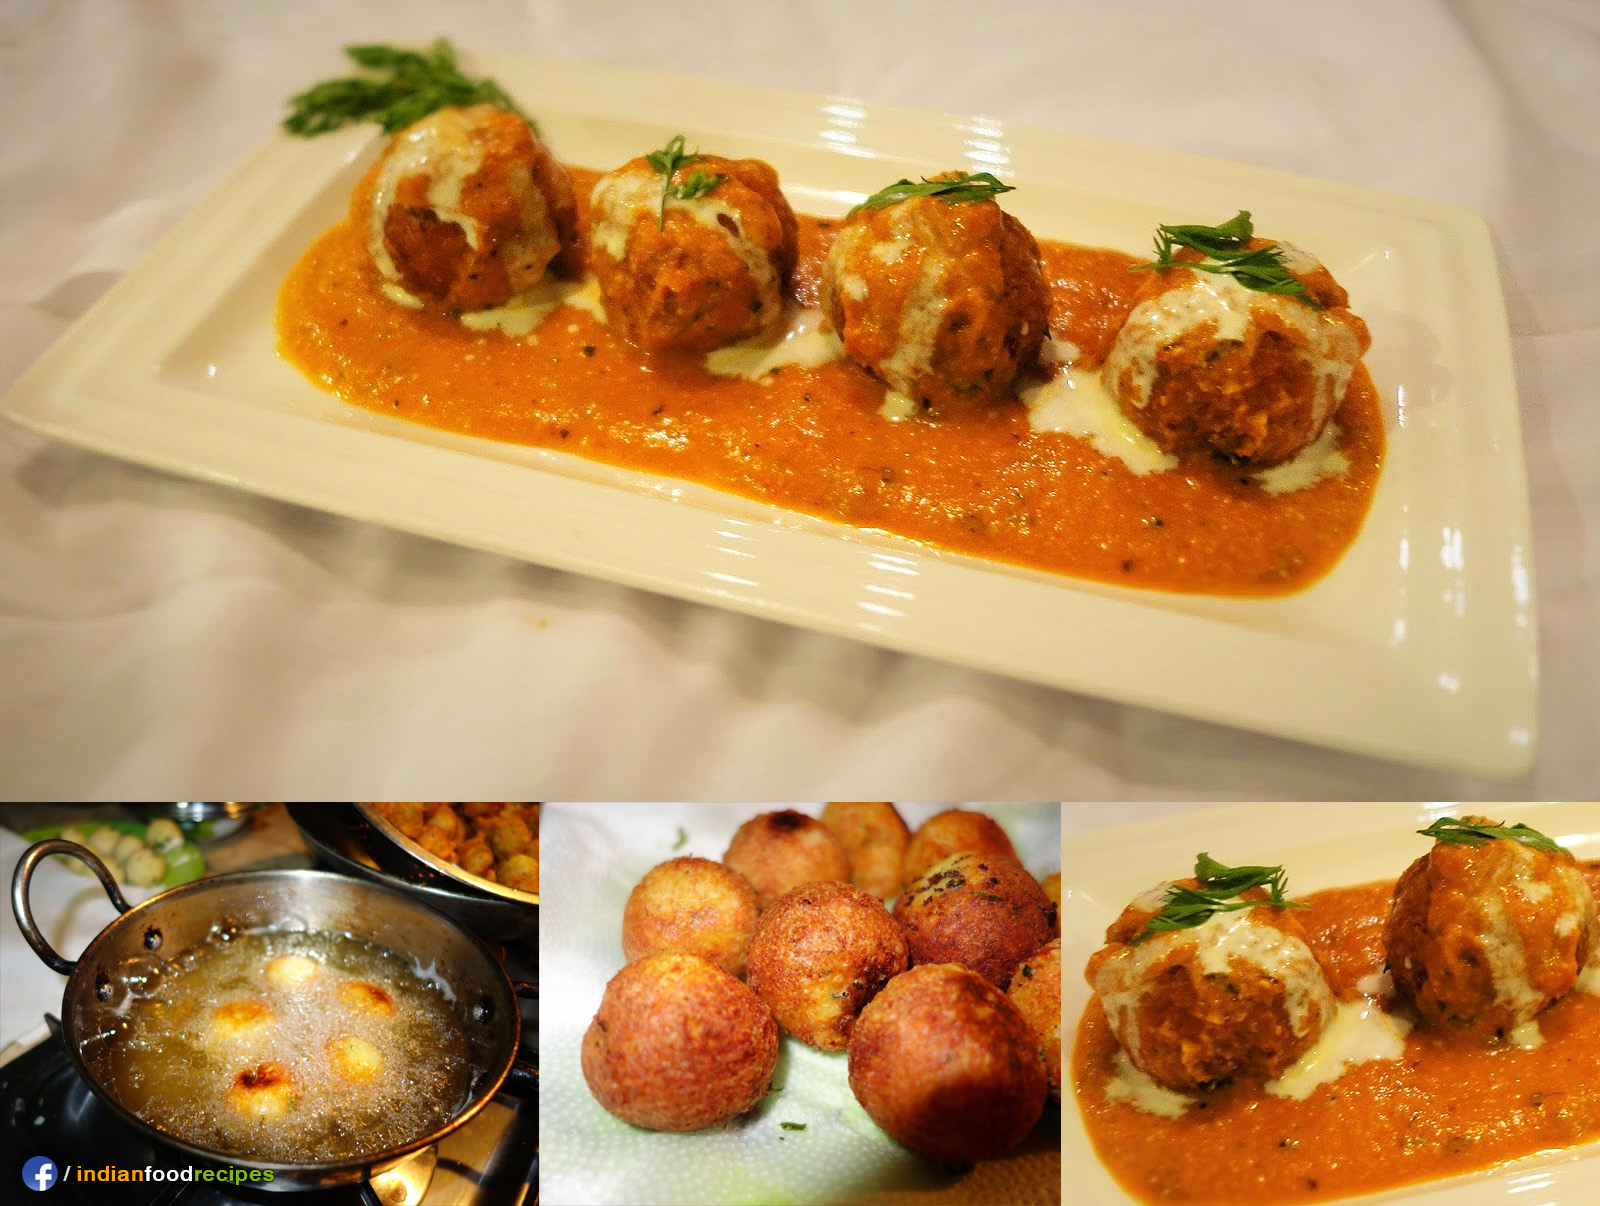 Classic Malai Kofta recipe step by step